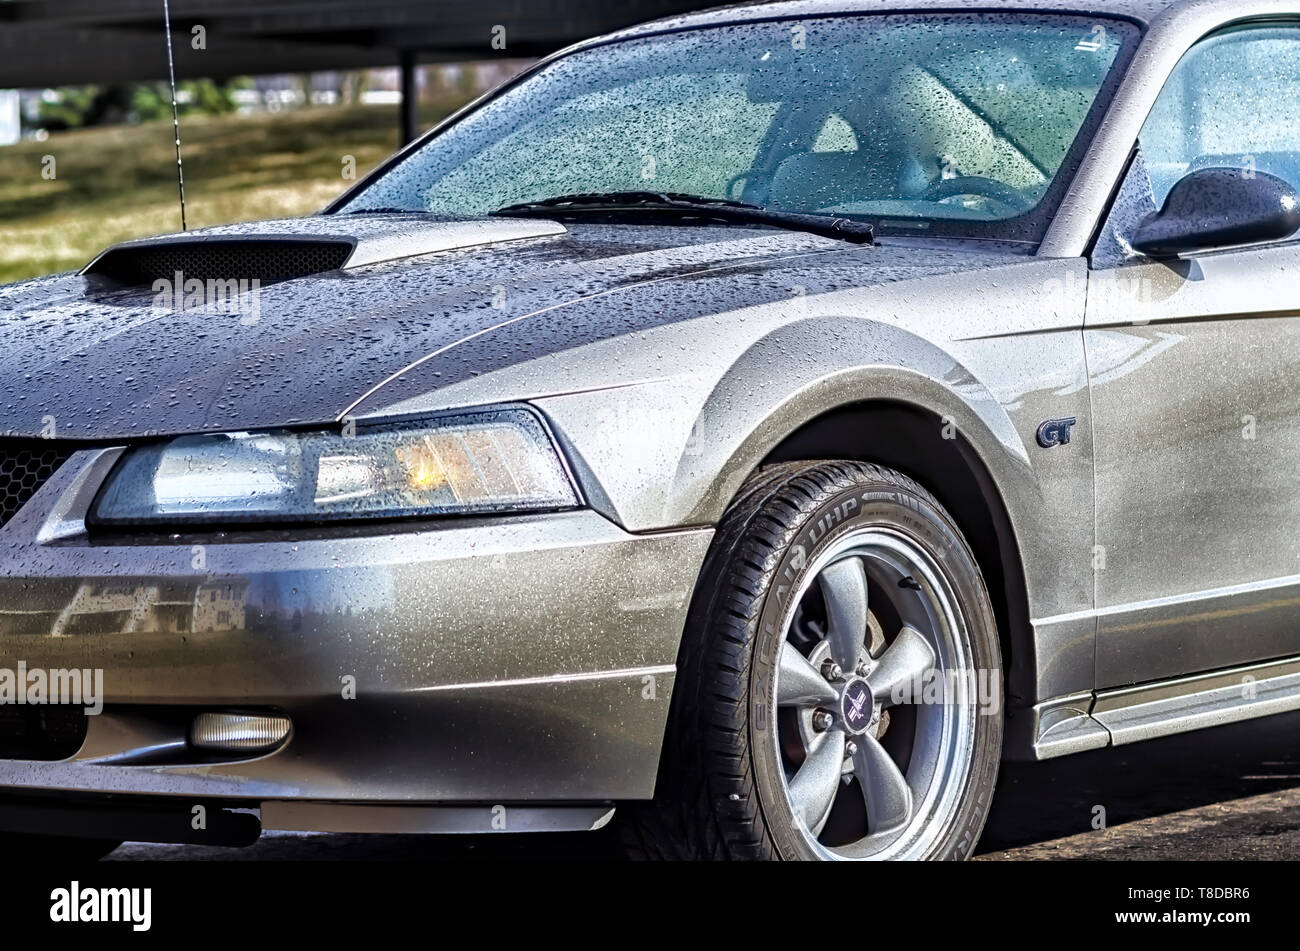 A 2001 Ford Mustang GT Coupe glistening in the sun after a summer storm. Glistening water droplets cover the body of the sports car. - Stock Image